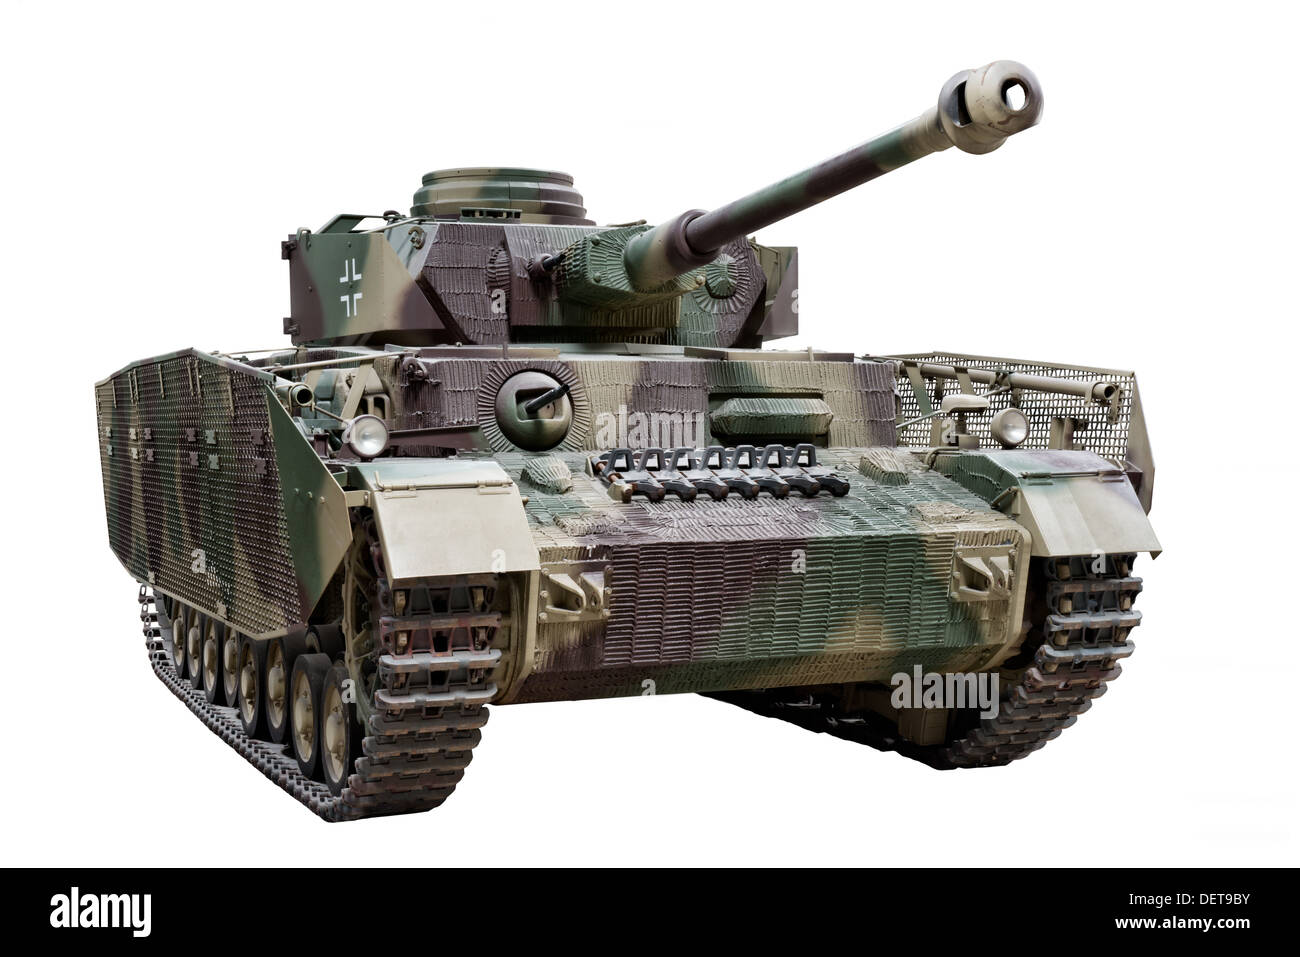 A PxKw IV (Sd.Kfz.161) Medium panzer tank used by Nazi German forces extensively during WW2 - Stock Image